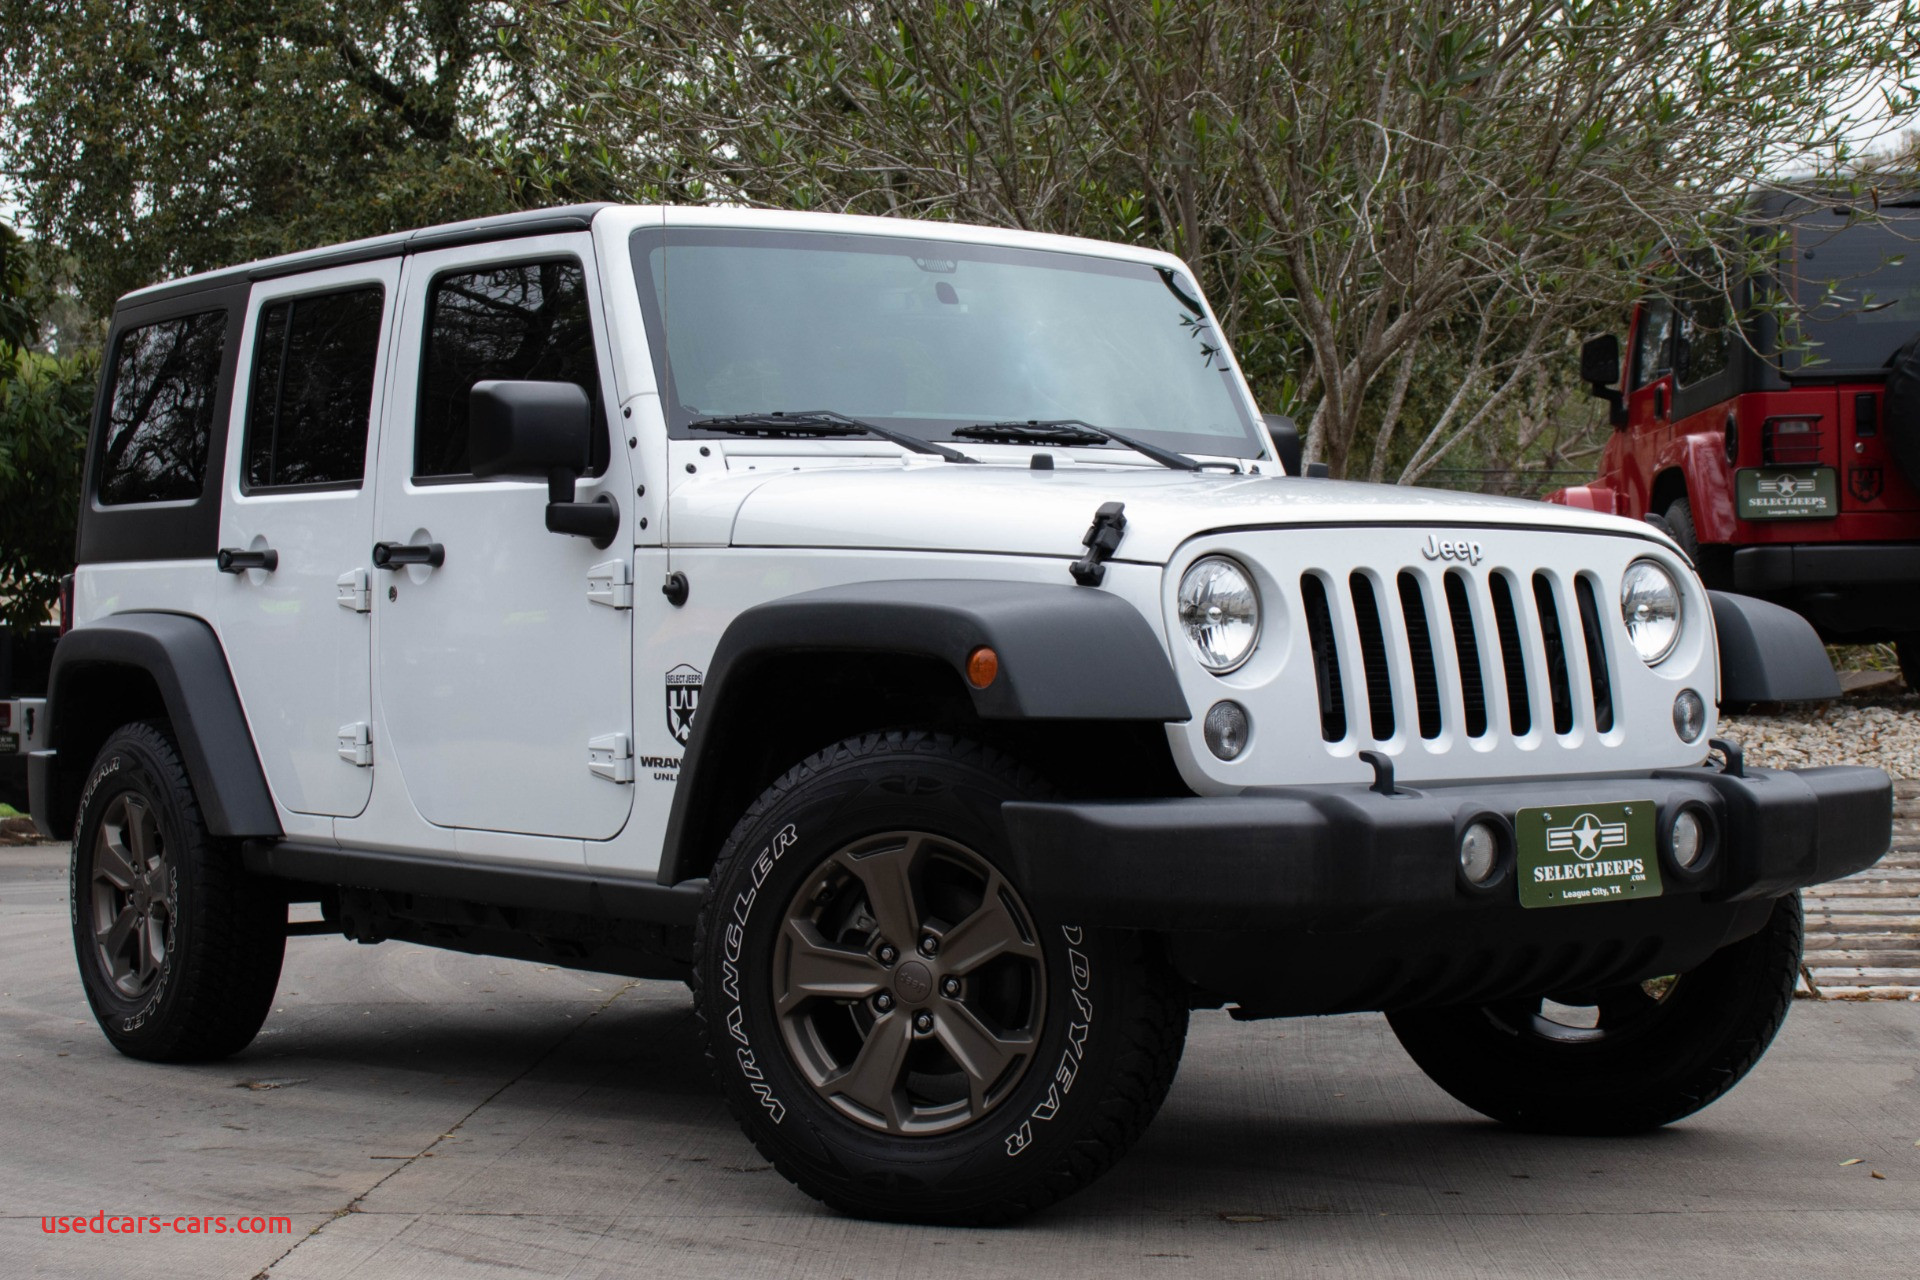 Jeep 2016 Wrangler Lovely Used 2016 Jeep Wrangler Unlimited Sport for Sale 28995